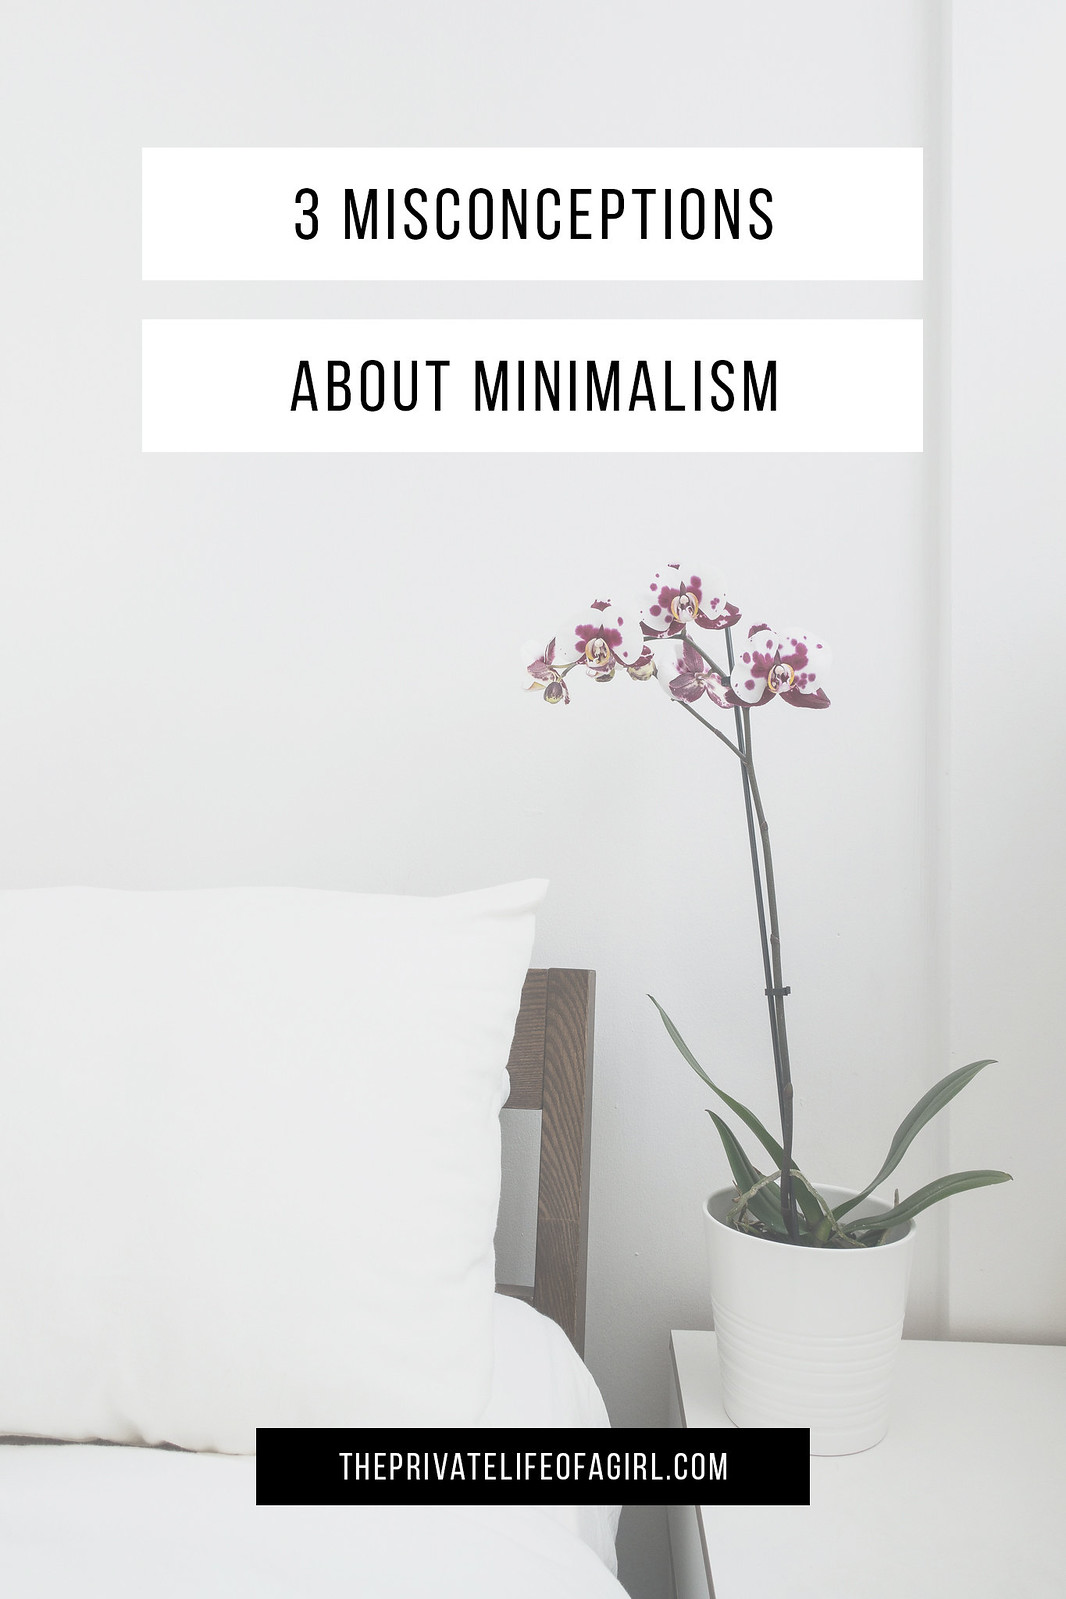 3 Common Misconceptions About Minimalism